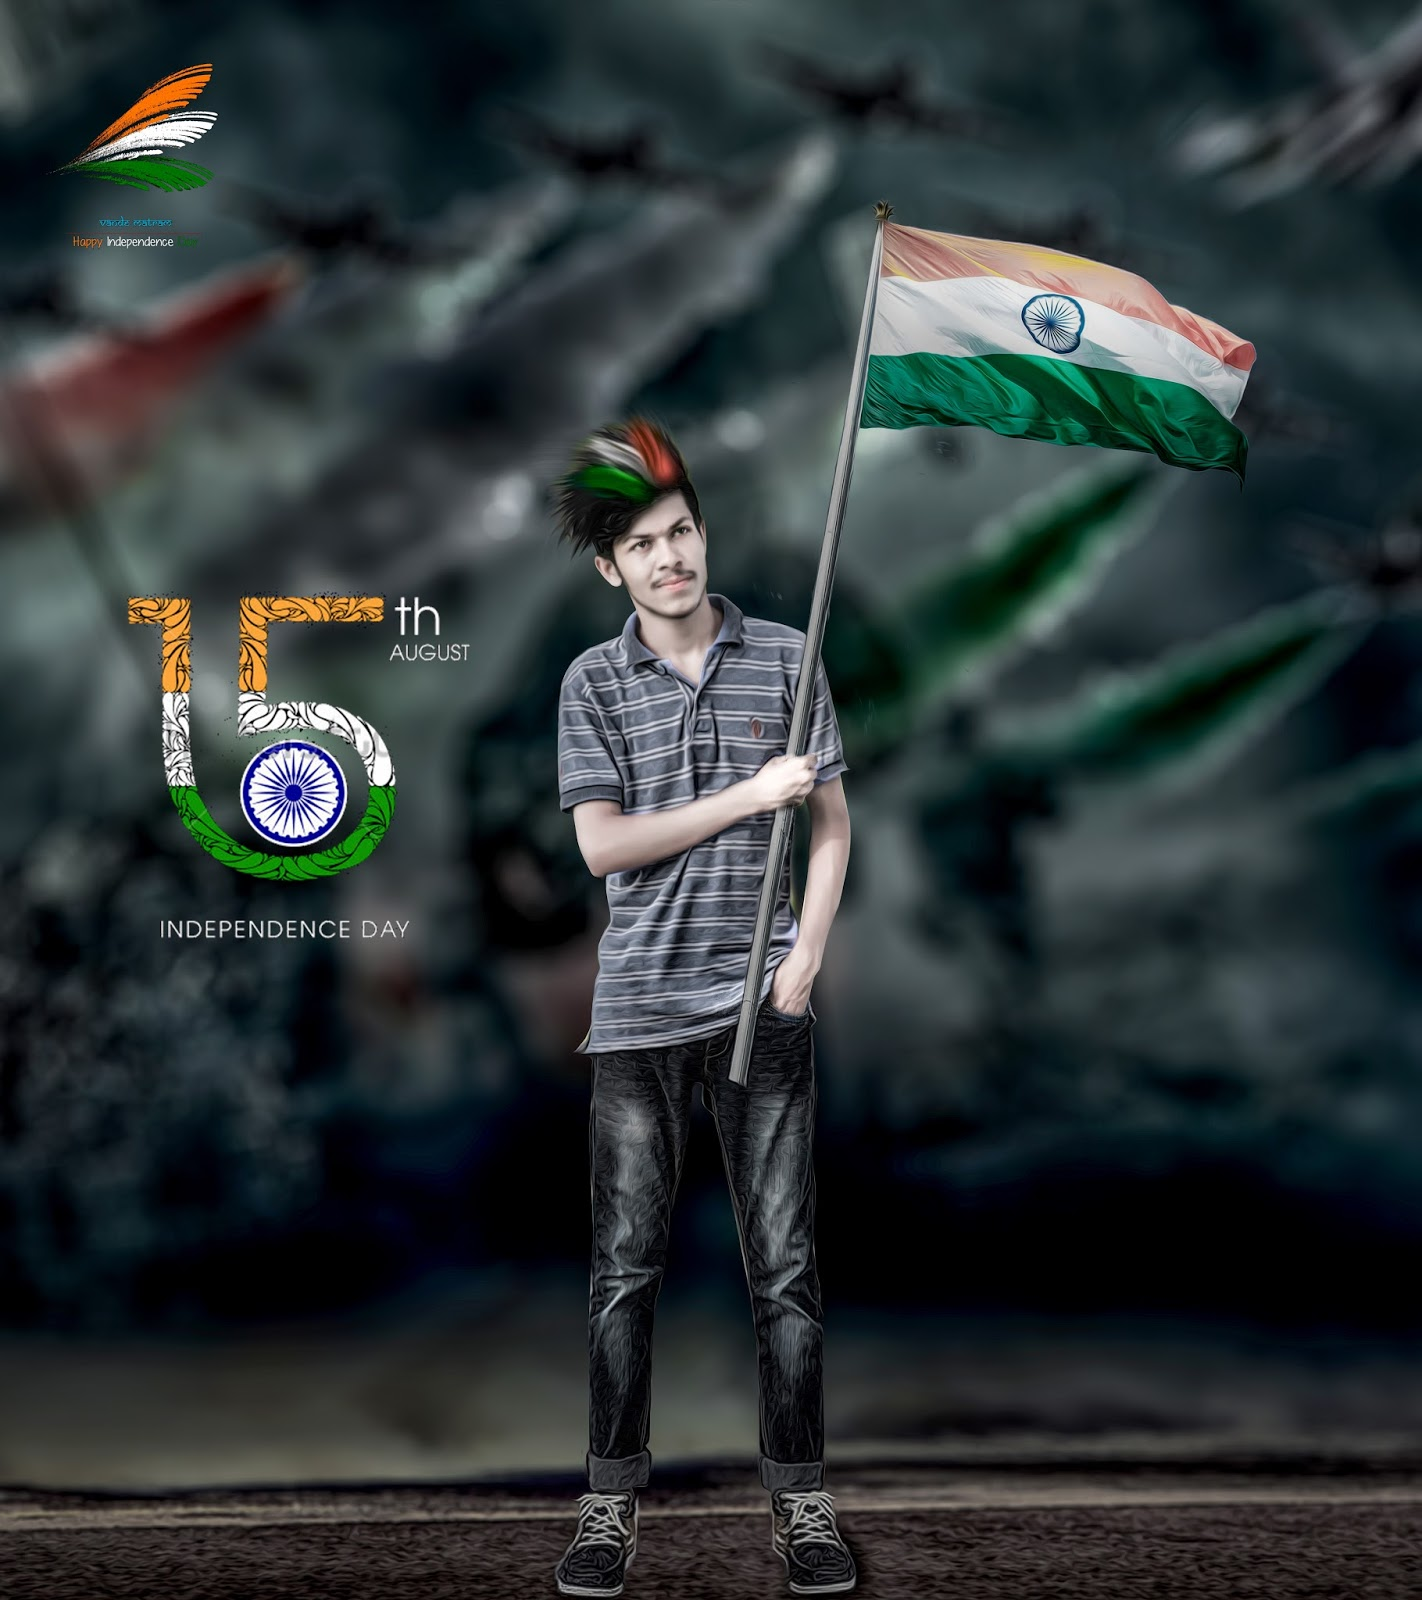 15 august special editing independence day special photo editing 15 august special editing independence day special photo editing cb editing tutorial photoshop cc baditri Images